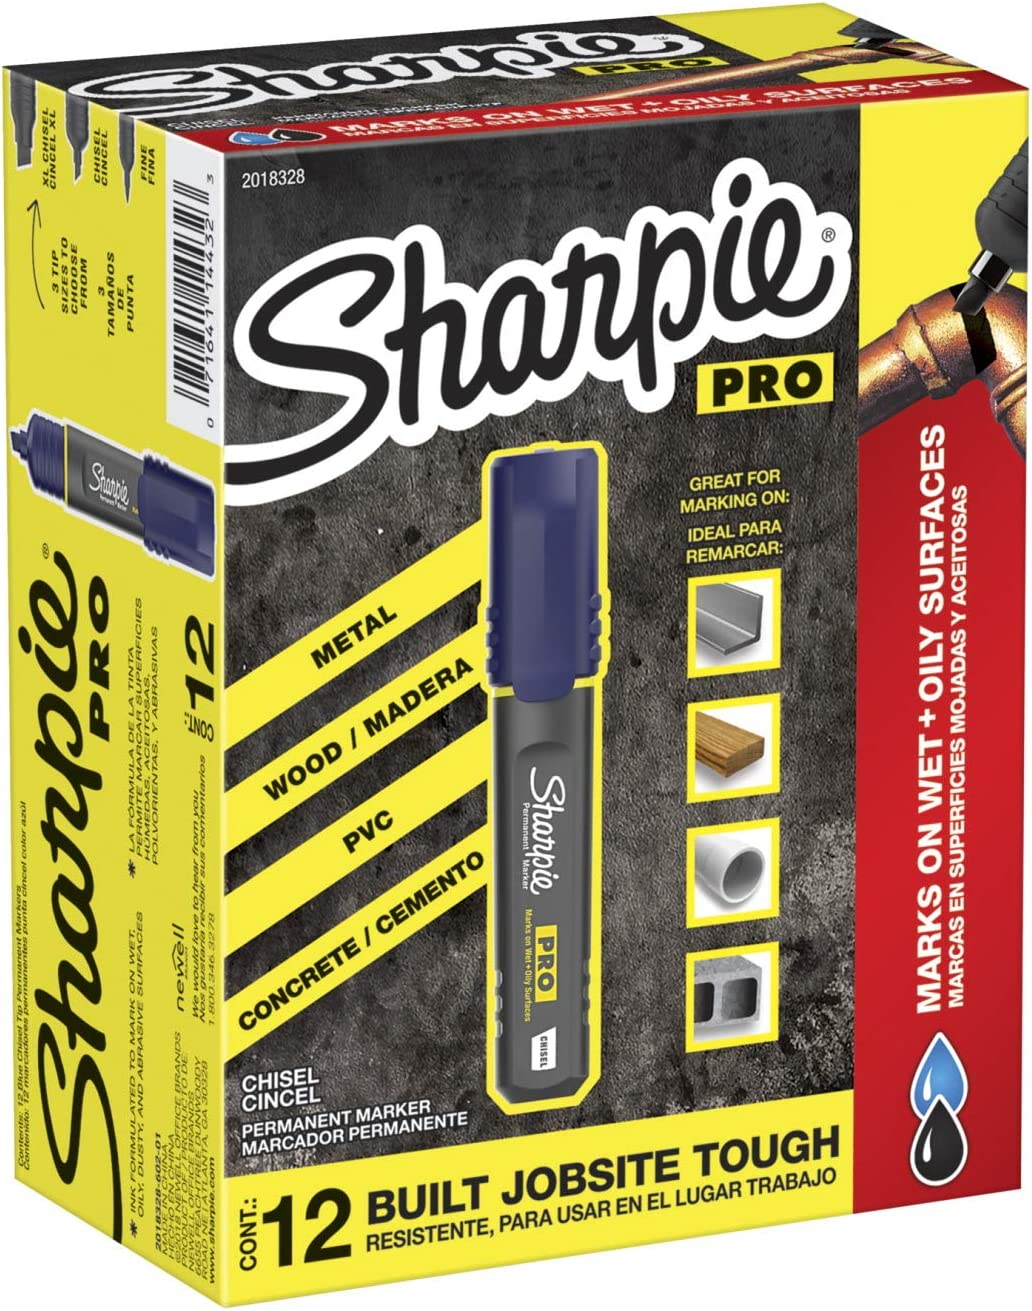 Sharpie Pro Permanent Marker, Medium, Chisel Tip, Red, 12-Count Marker (2018327)